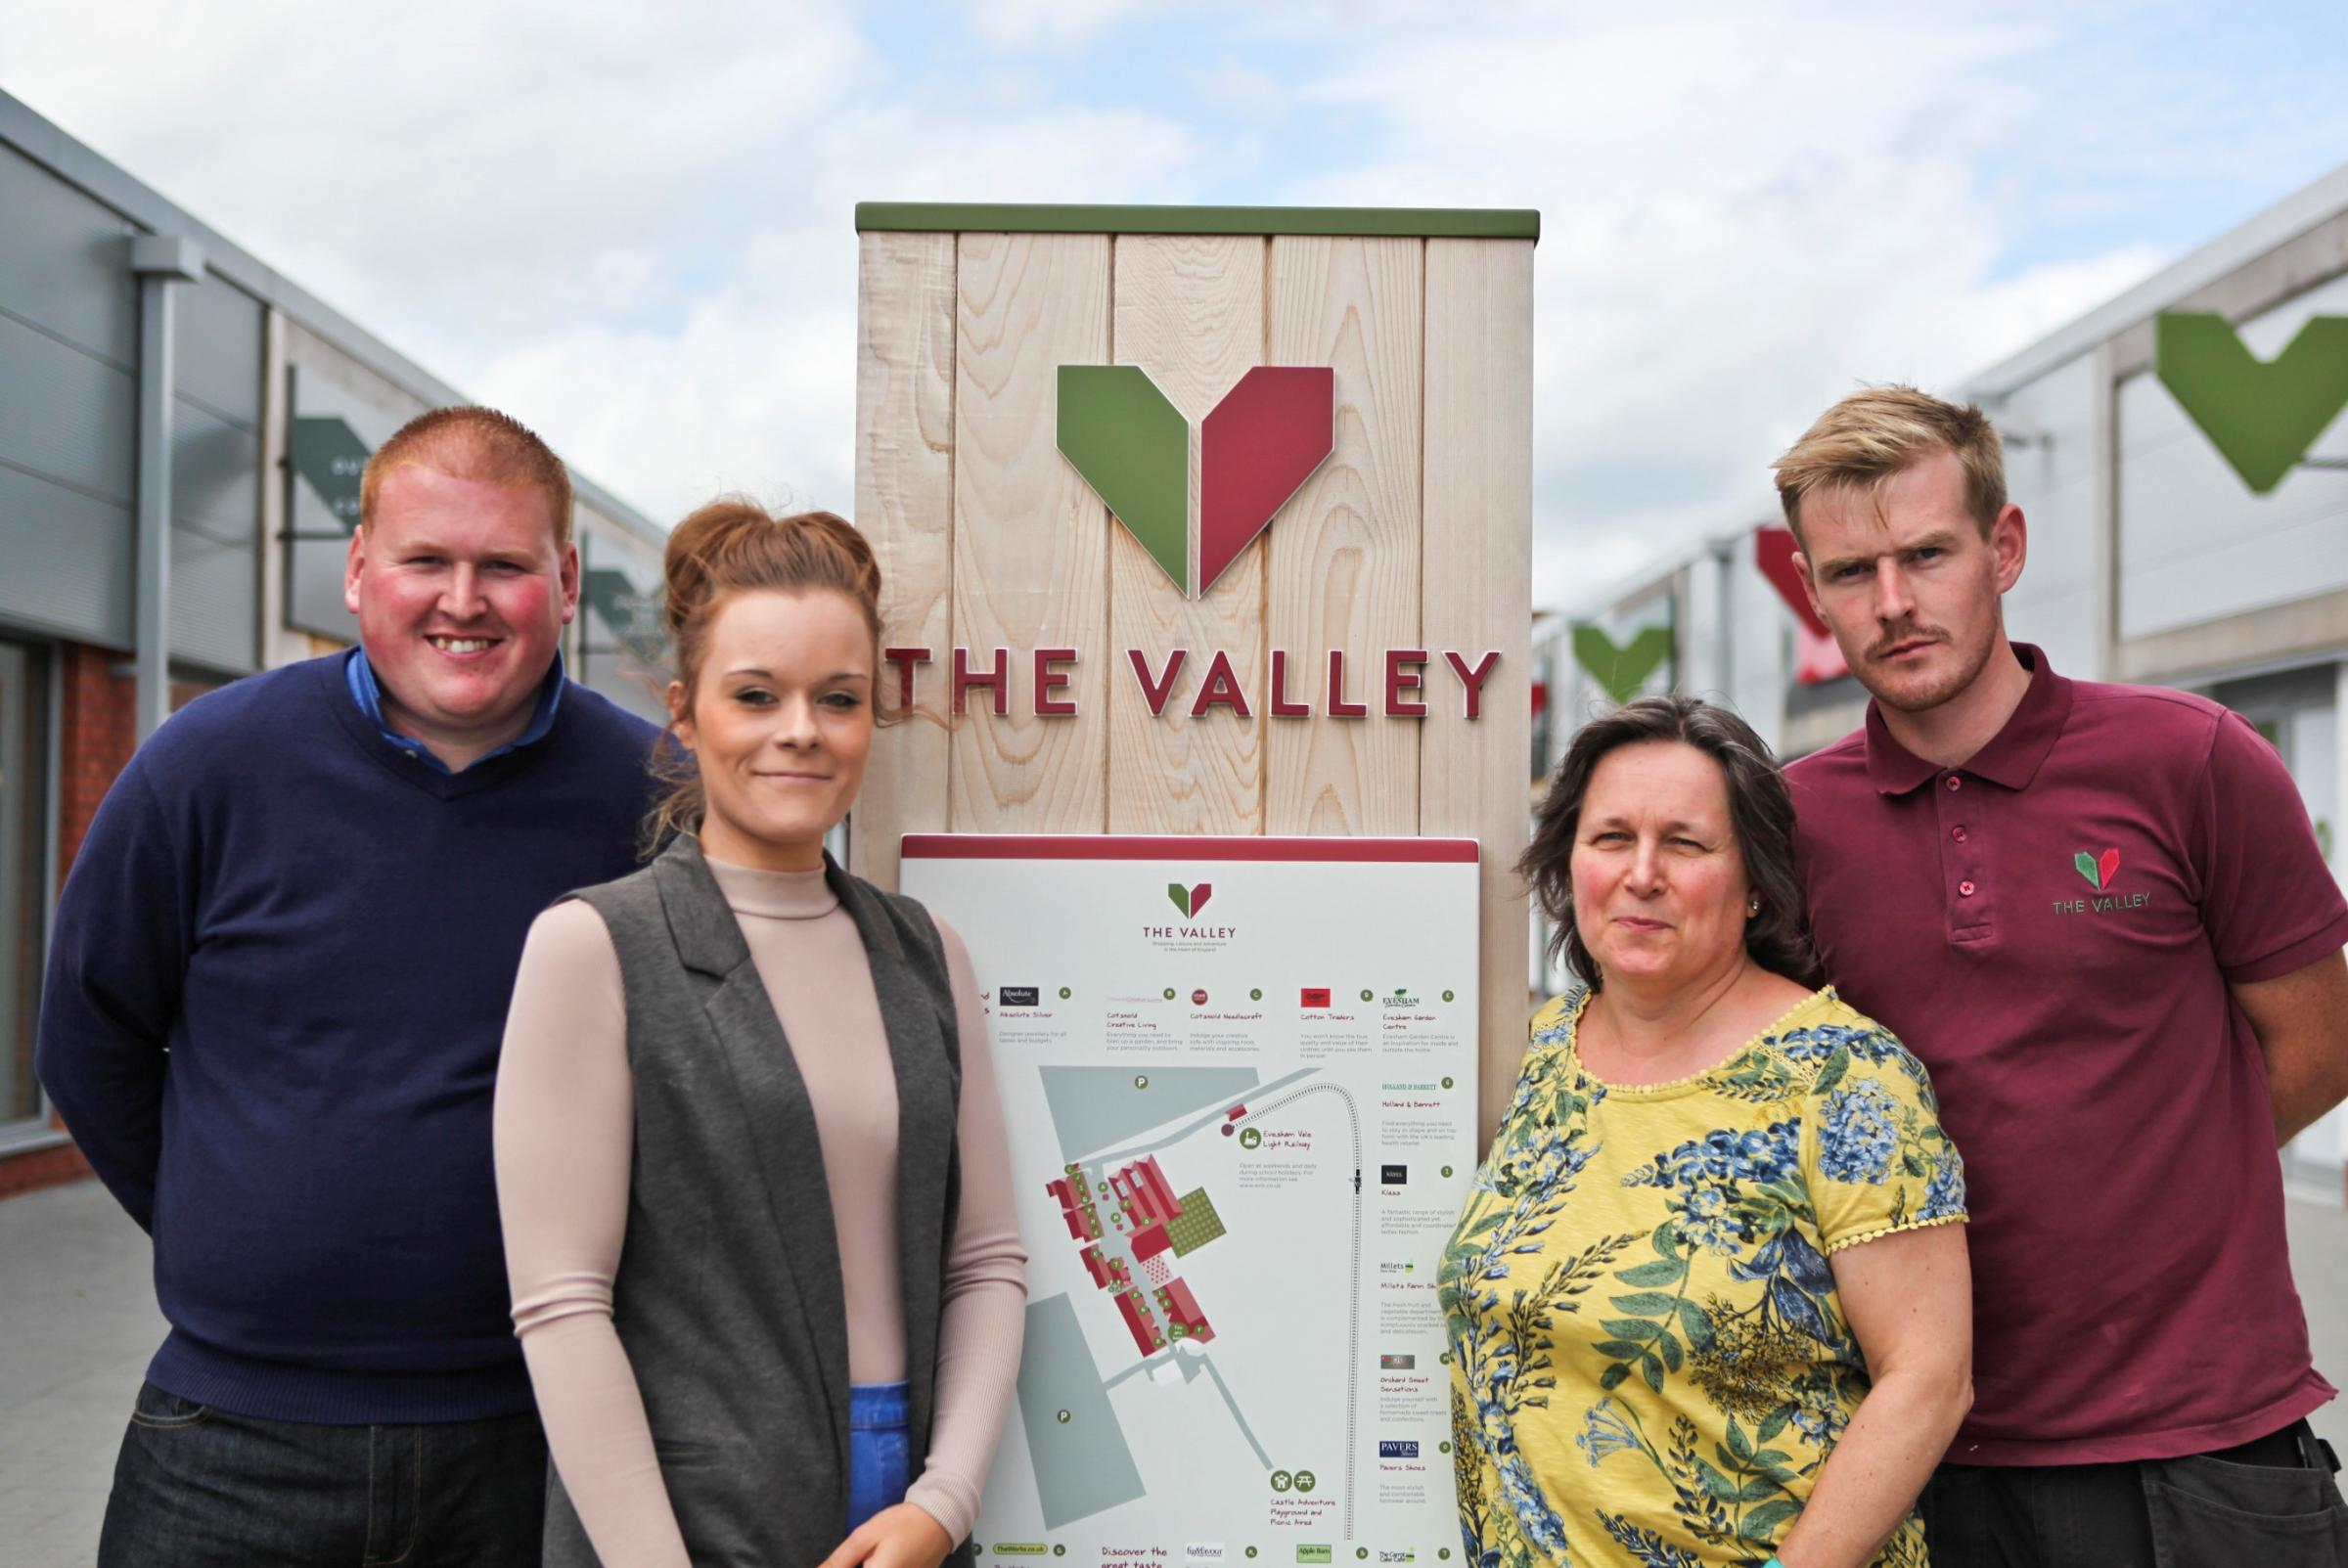 TRAINING: Paul James, facilities manager at The Valley, Daniel James of The Valley's site team, Rachel Evans, lead teacher of Outreach at the Vale of Evesham School and Anna Phillips, parent of child with Autism.